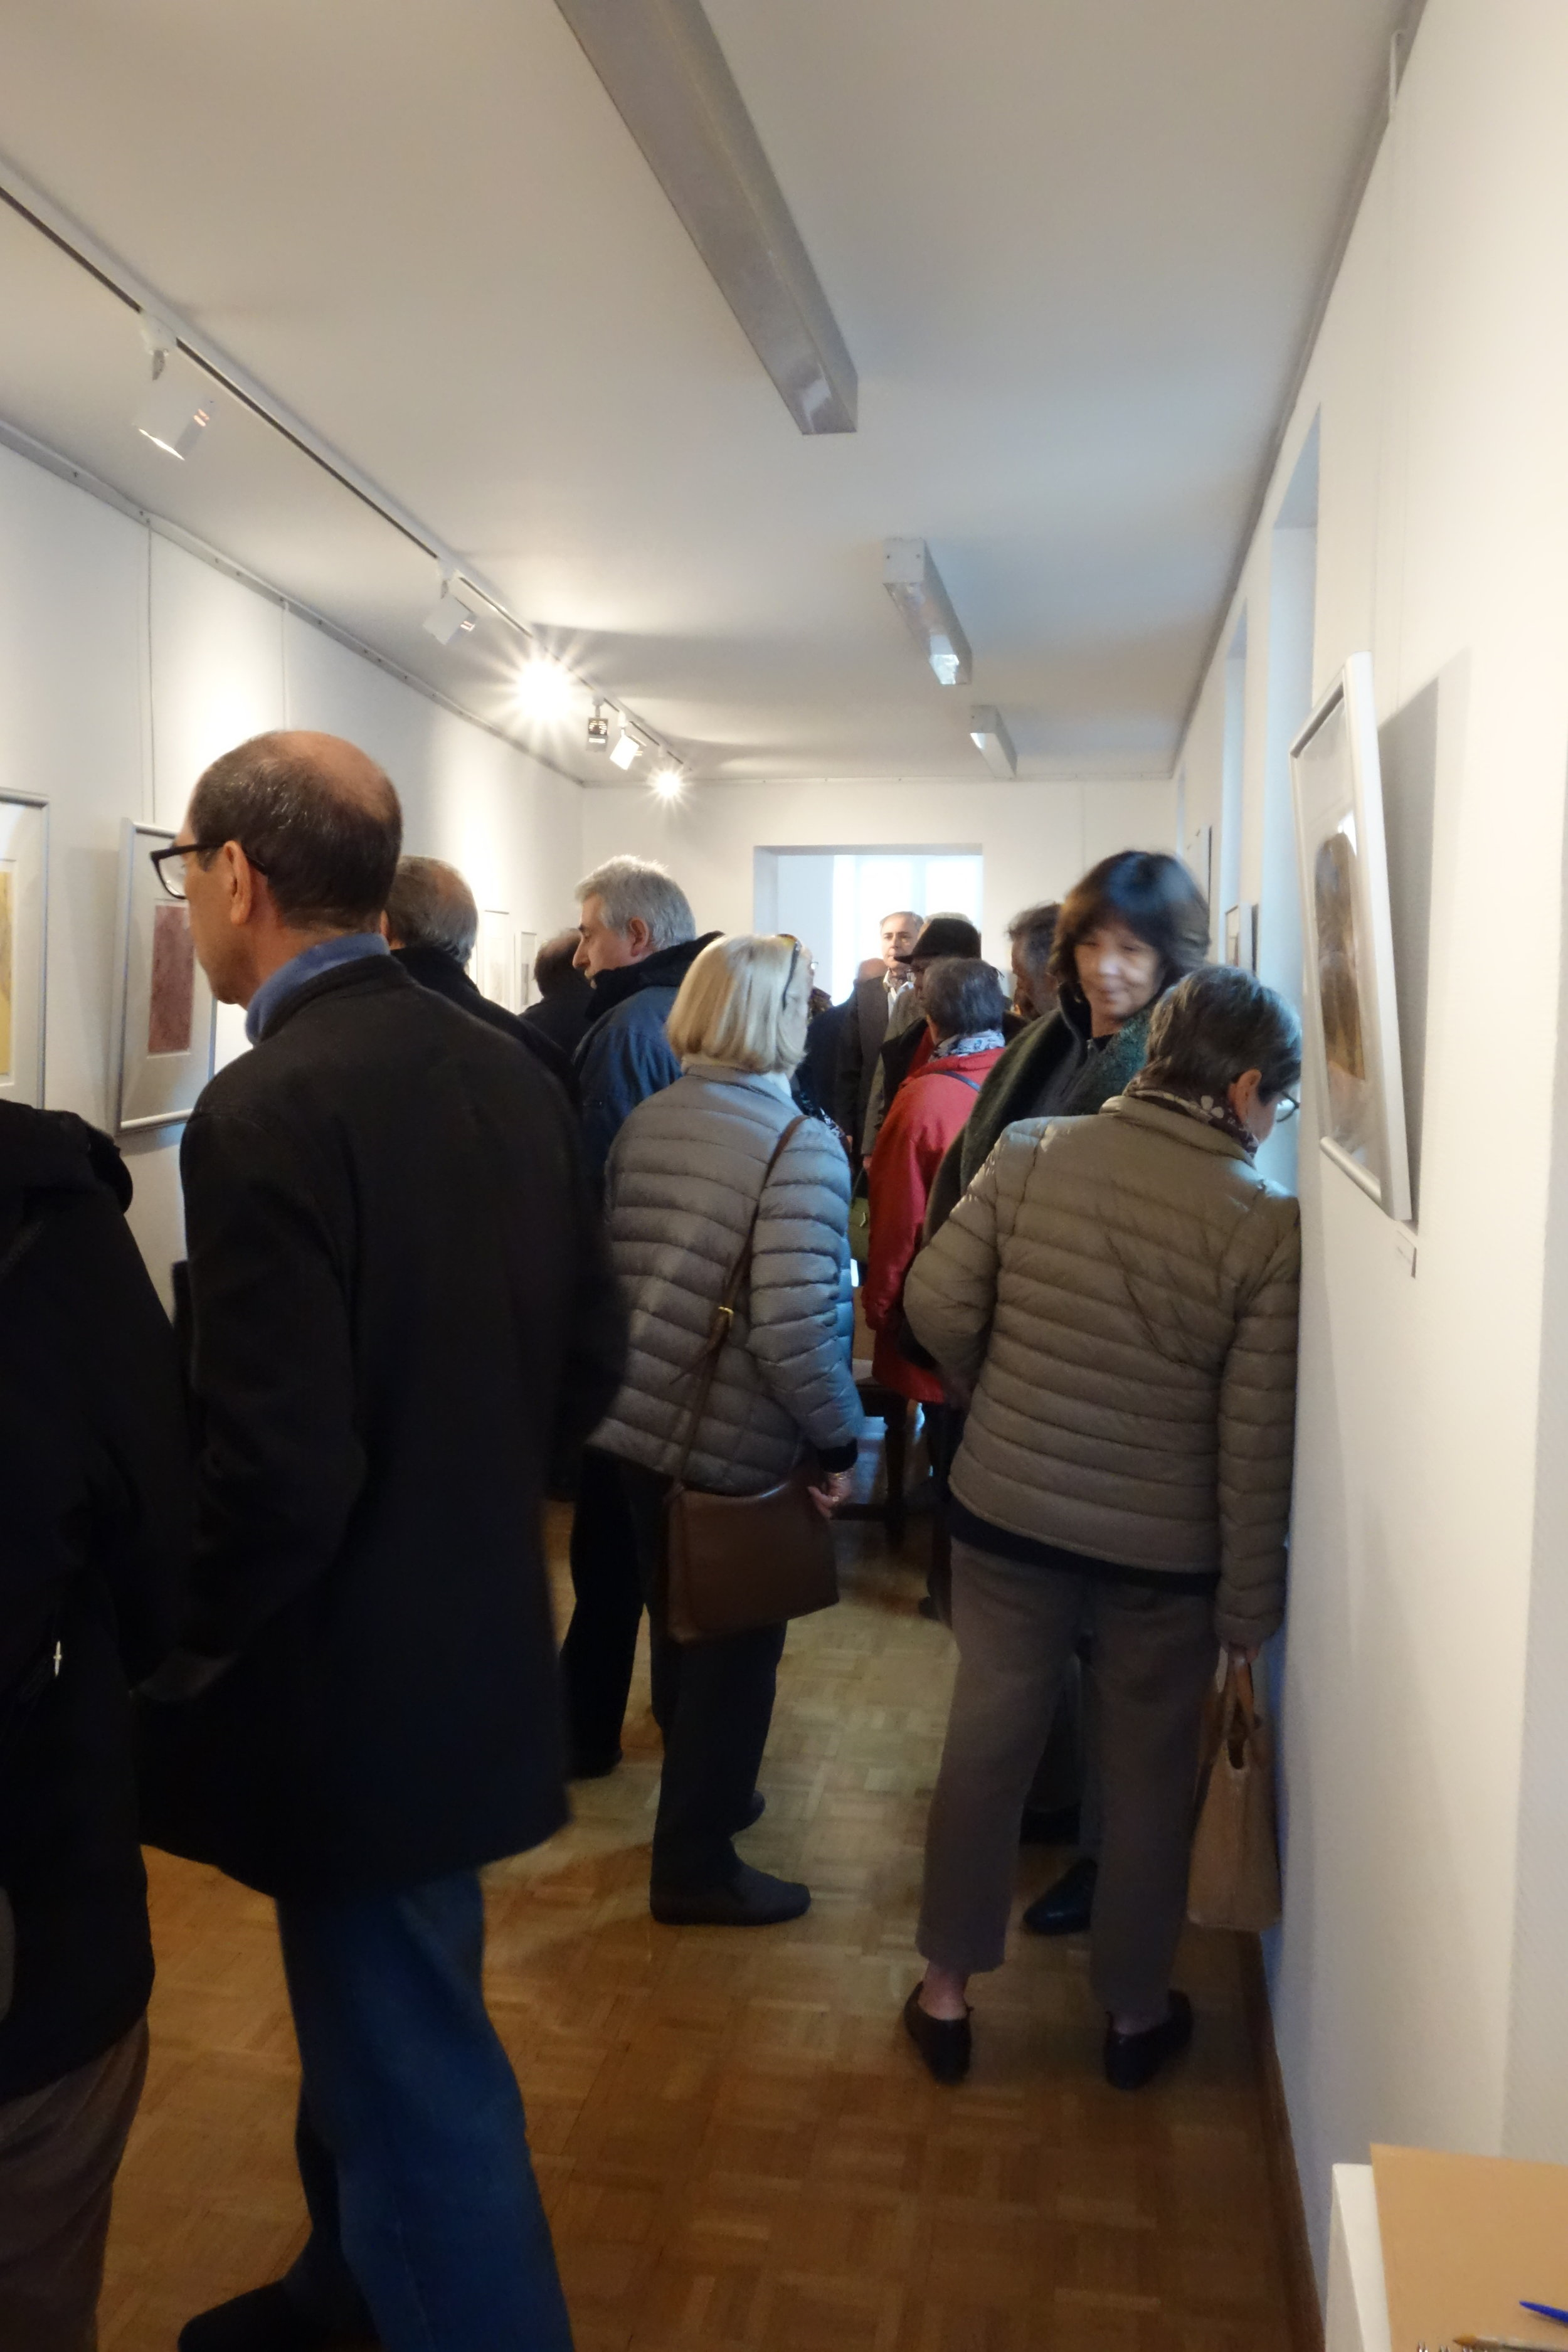 Another moment during the viewing (Photograph courtesy of Michelle Anderson)